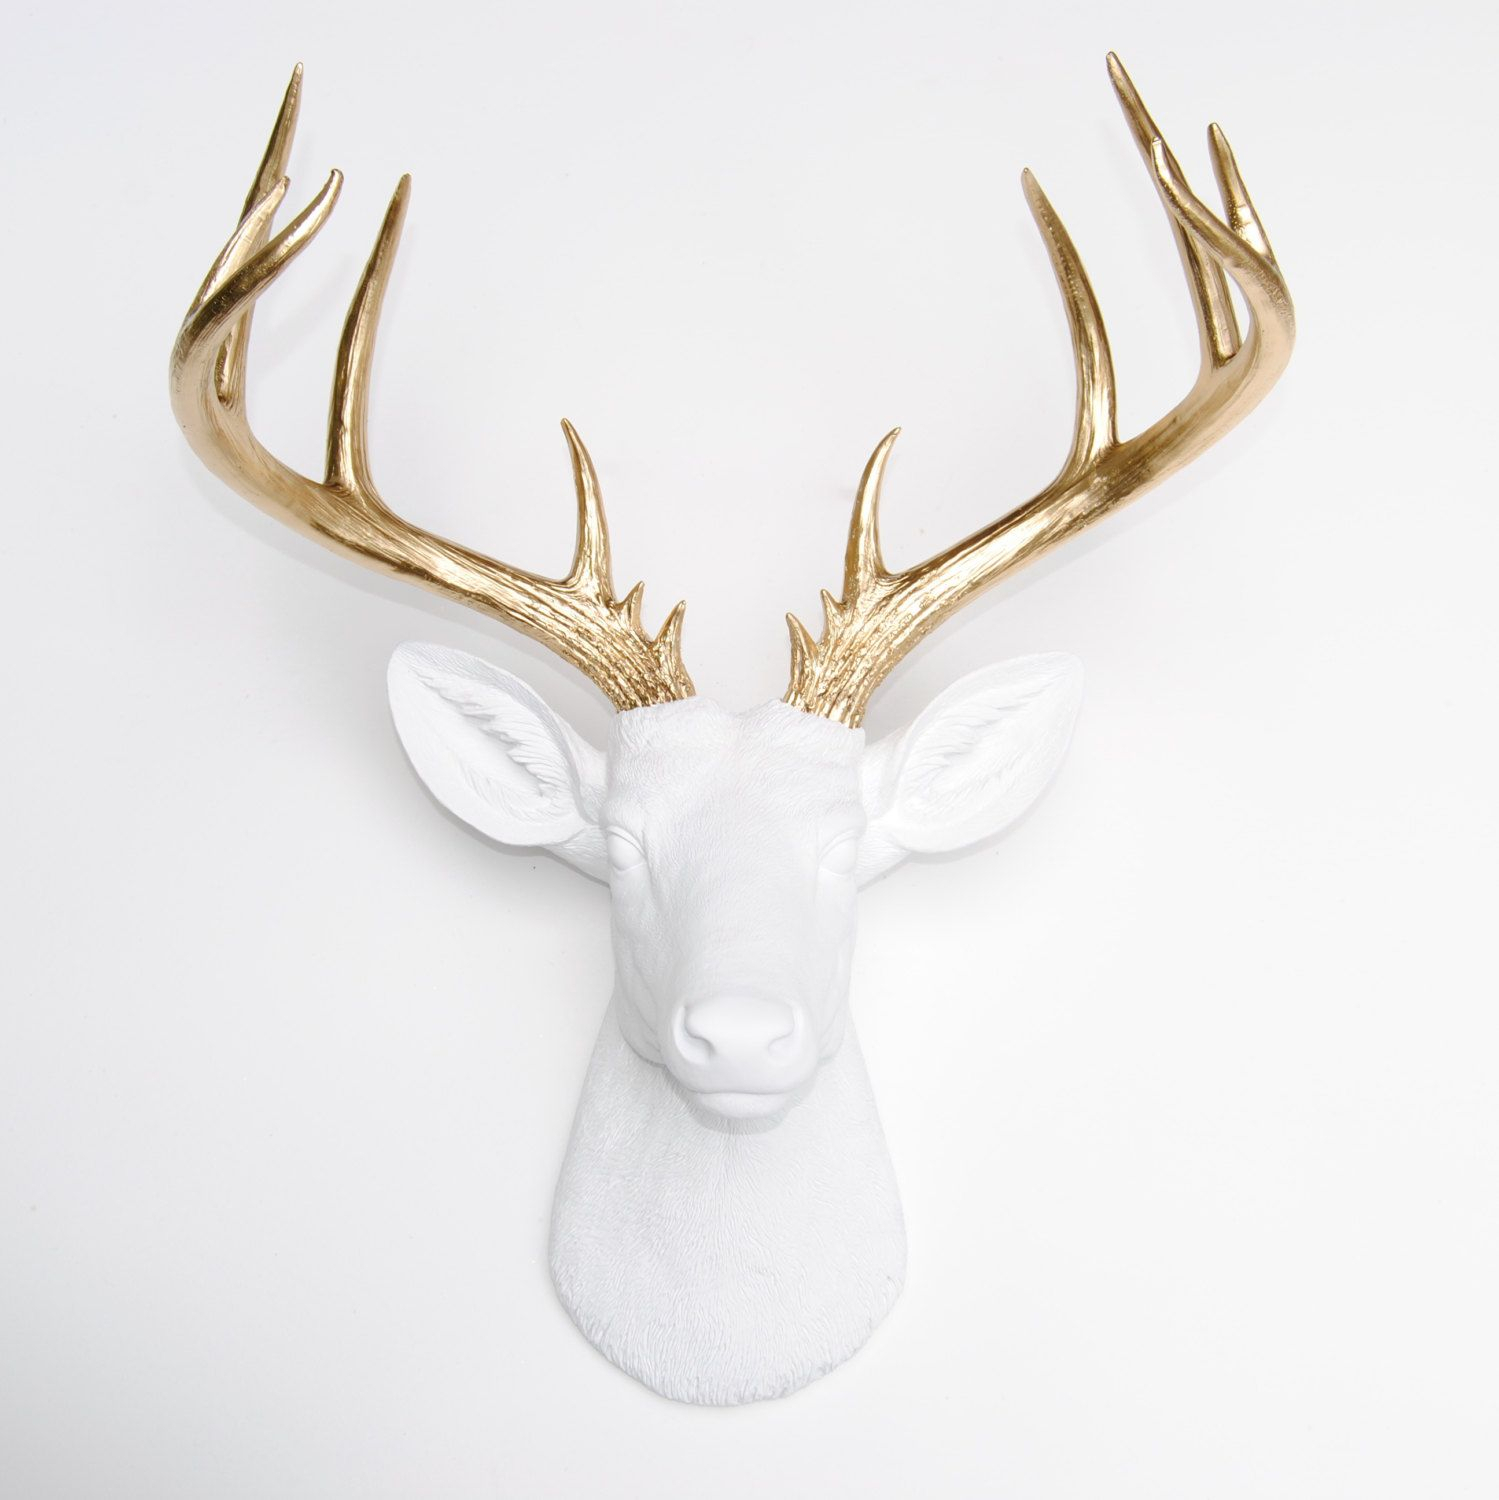 Large Deer Head Sculpture –near And Deer Faux Taxidermy Regarding Large Deer Head Faux Taxidermy Wall Decor (View 3 of 30)